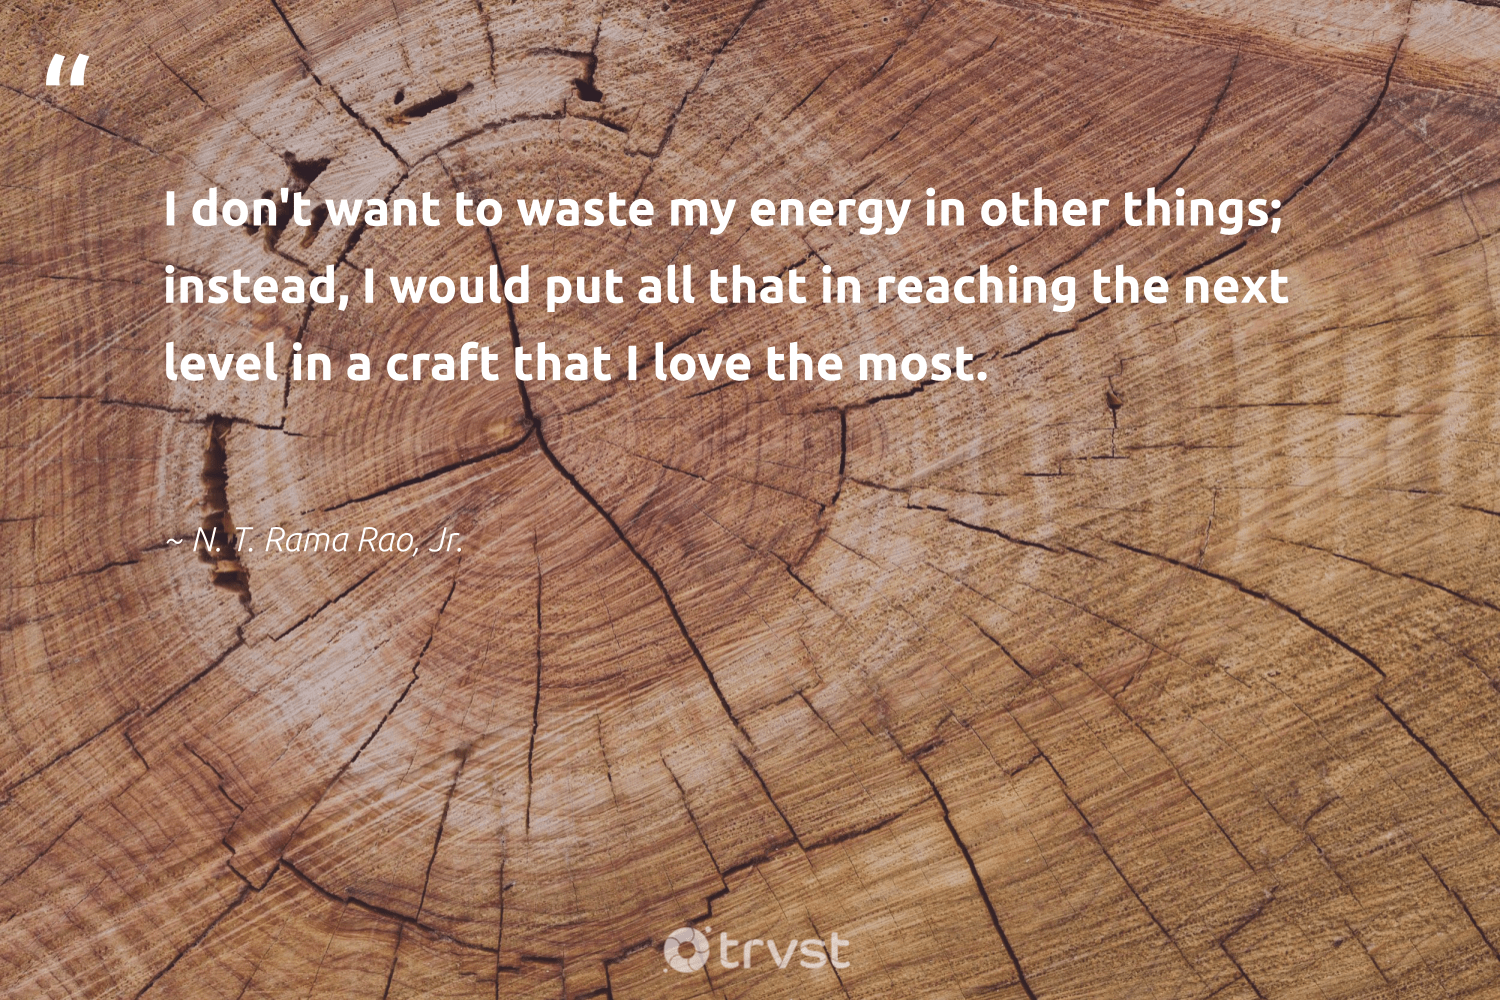 """I don't want to waste my energy in other things; instead, I would put all that in reaching the next level in a craft that I love the most.""  - N. T. Rama Rao, Jr. #trvst #quotes #love #waste #energy #makeadifference #beinspired #dogood #dotherightthing #betterplanet #bethechange #weareallone"